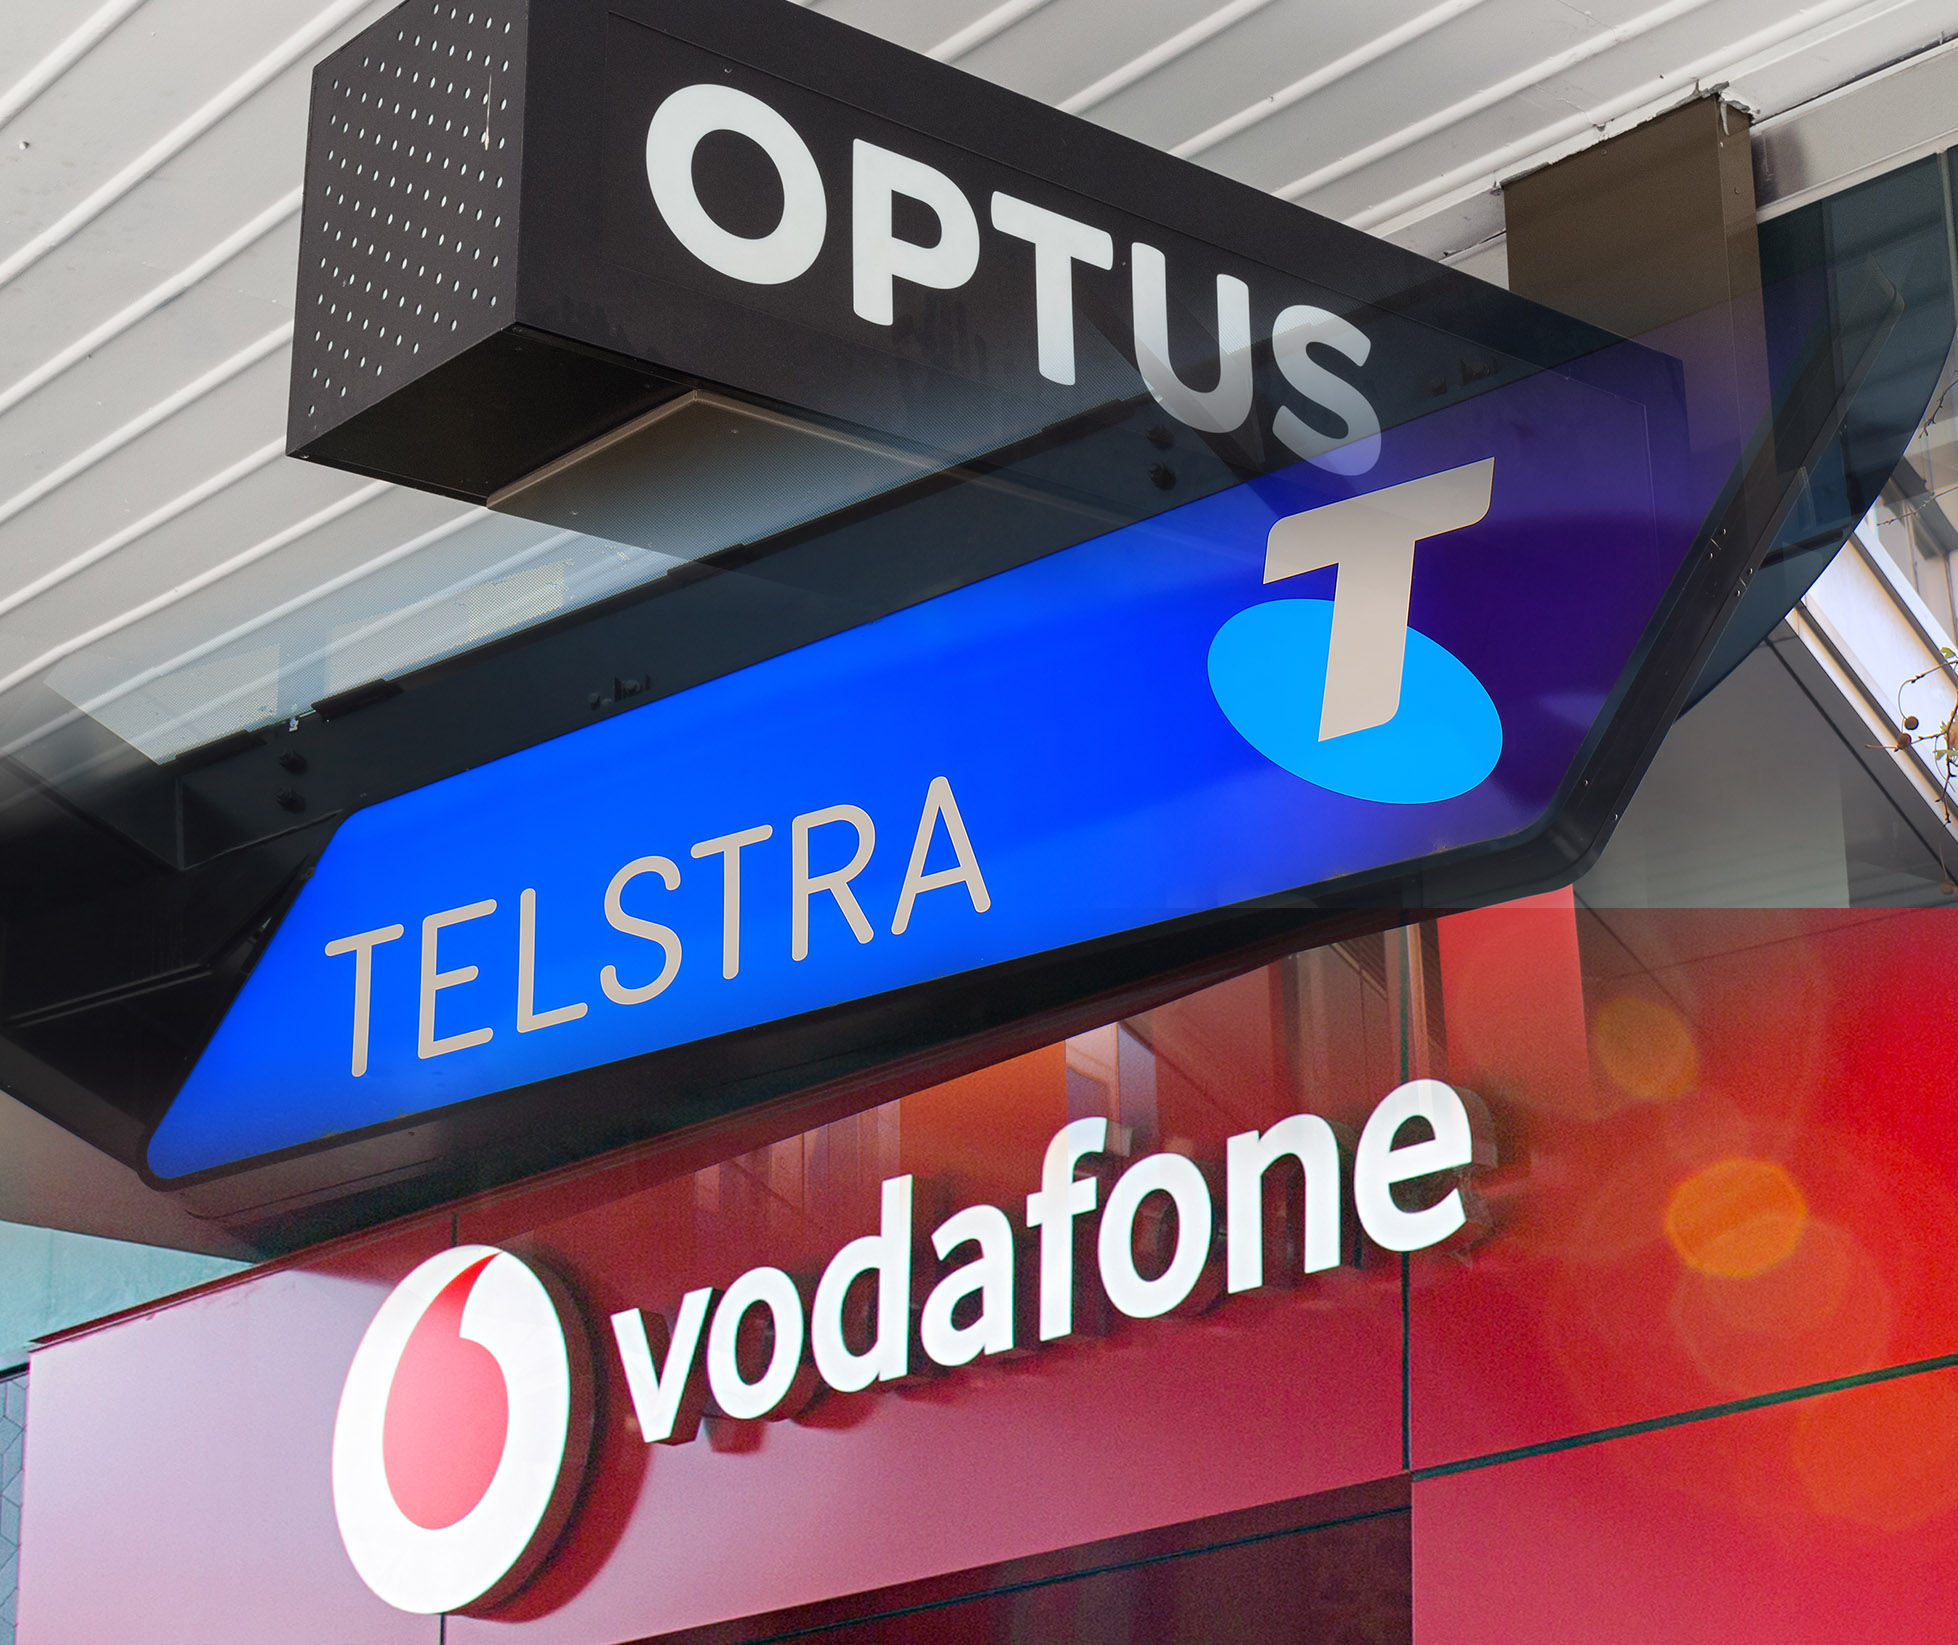 Telstra, Optus and Vodafone - Which is best? Which is